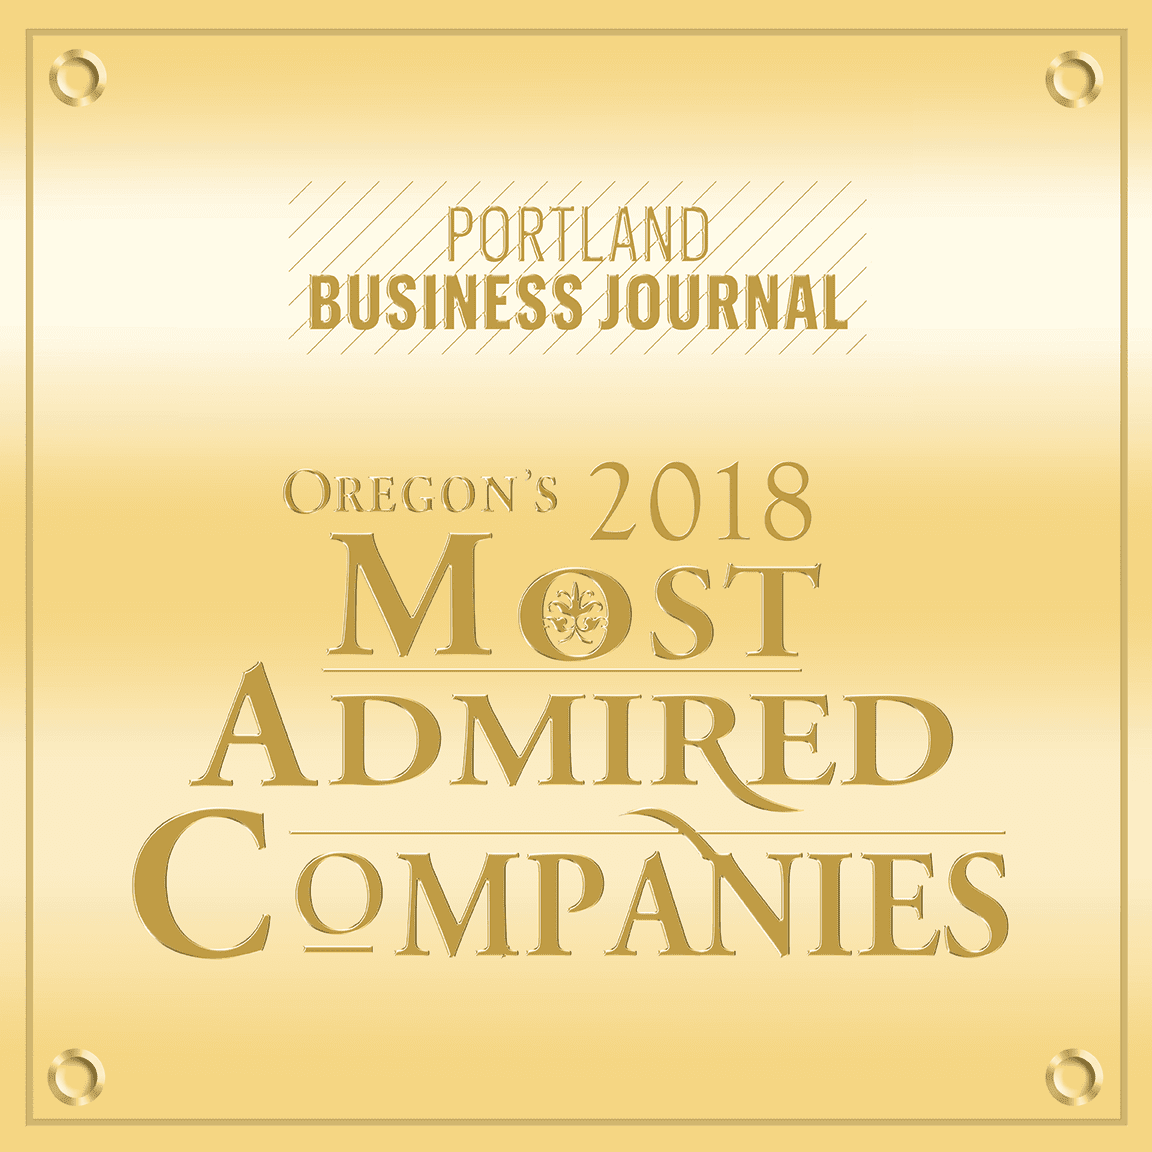 2018 Most Admired Companies | Portland Business Journal